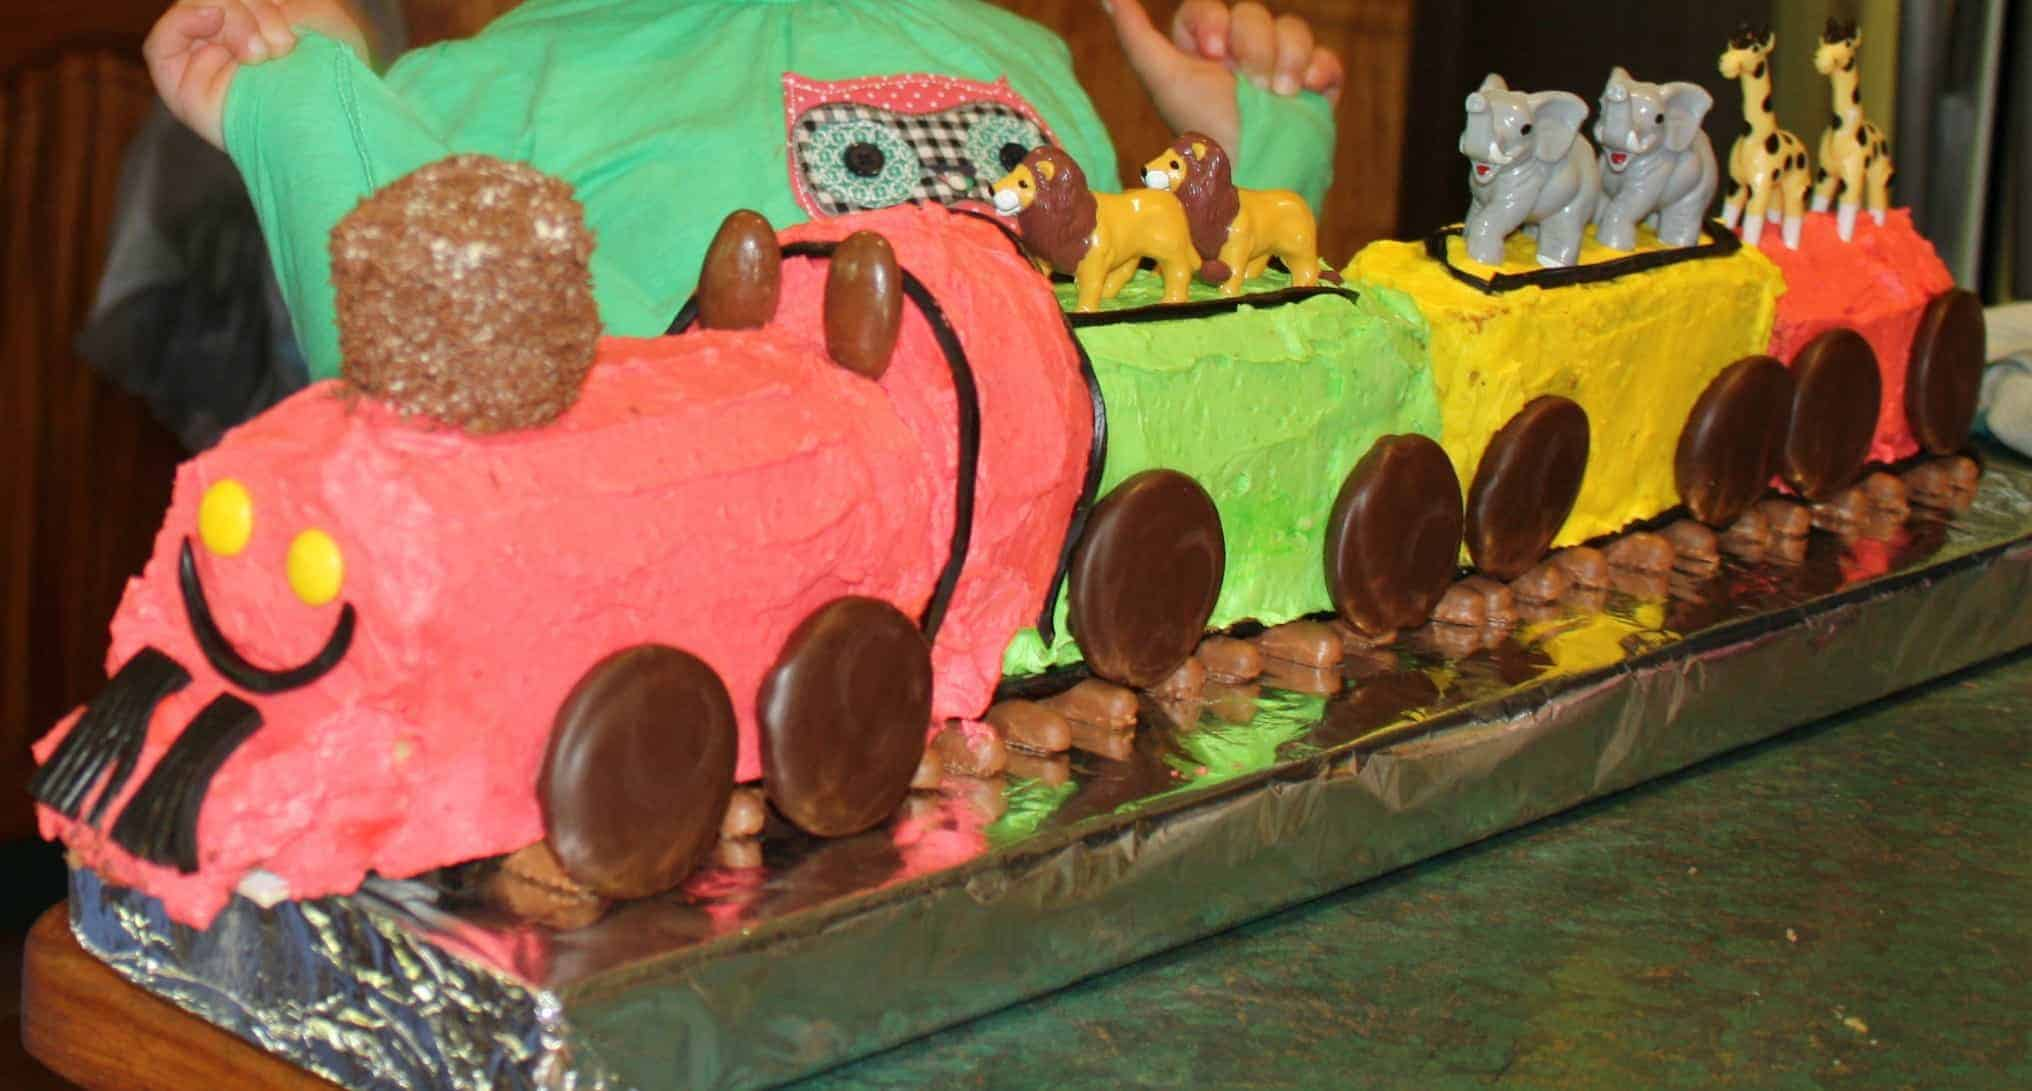 Cooker and a Looker Train Cake